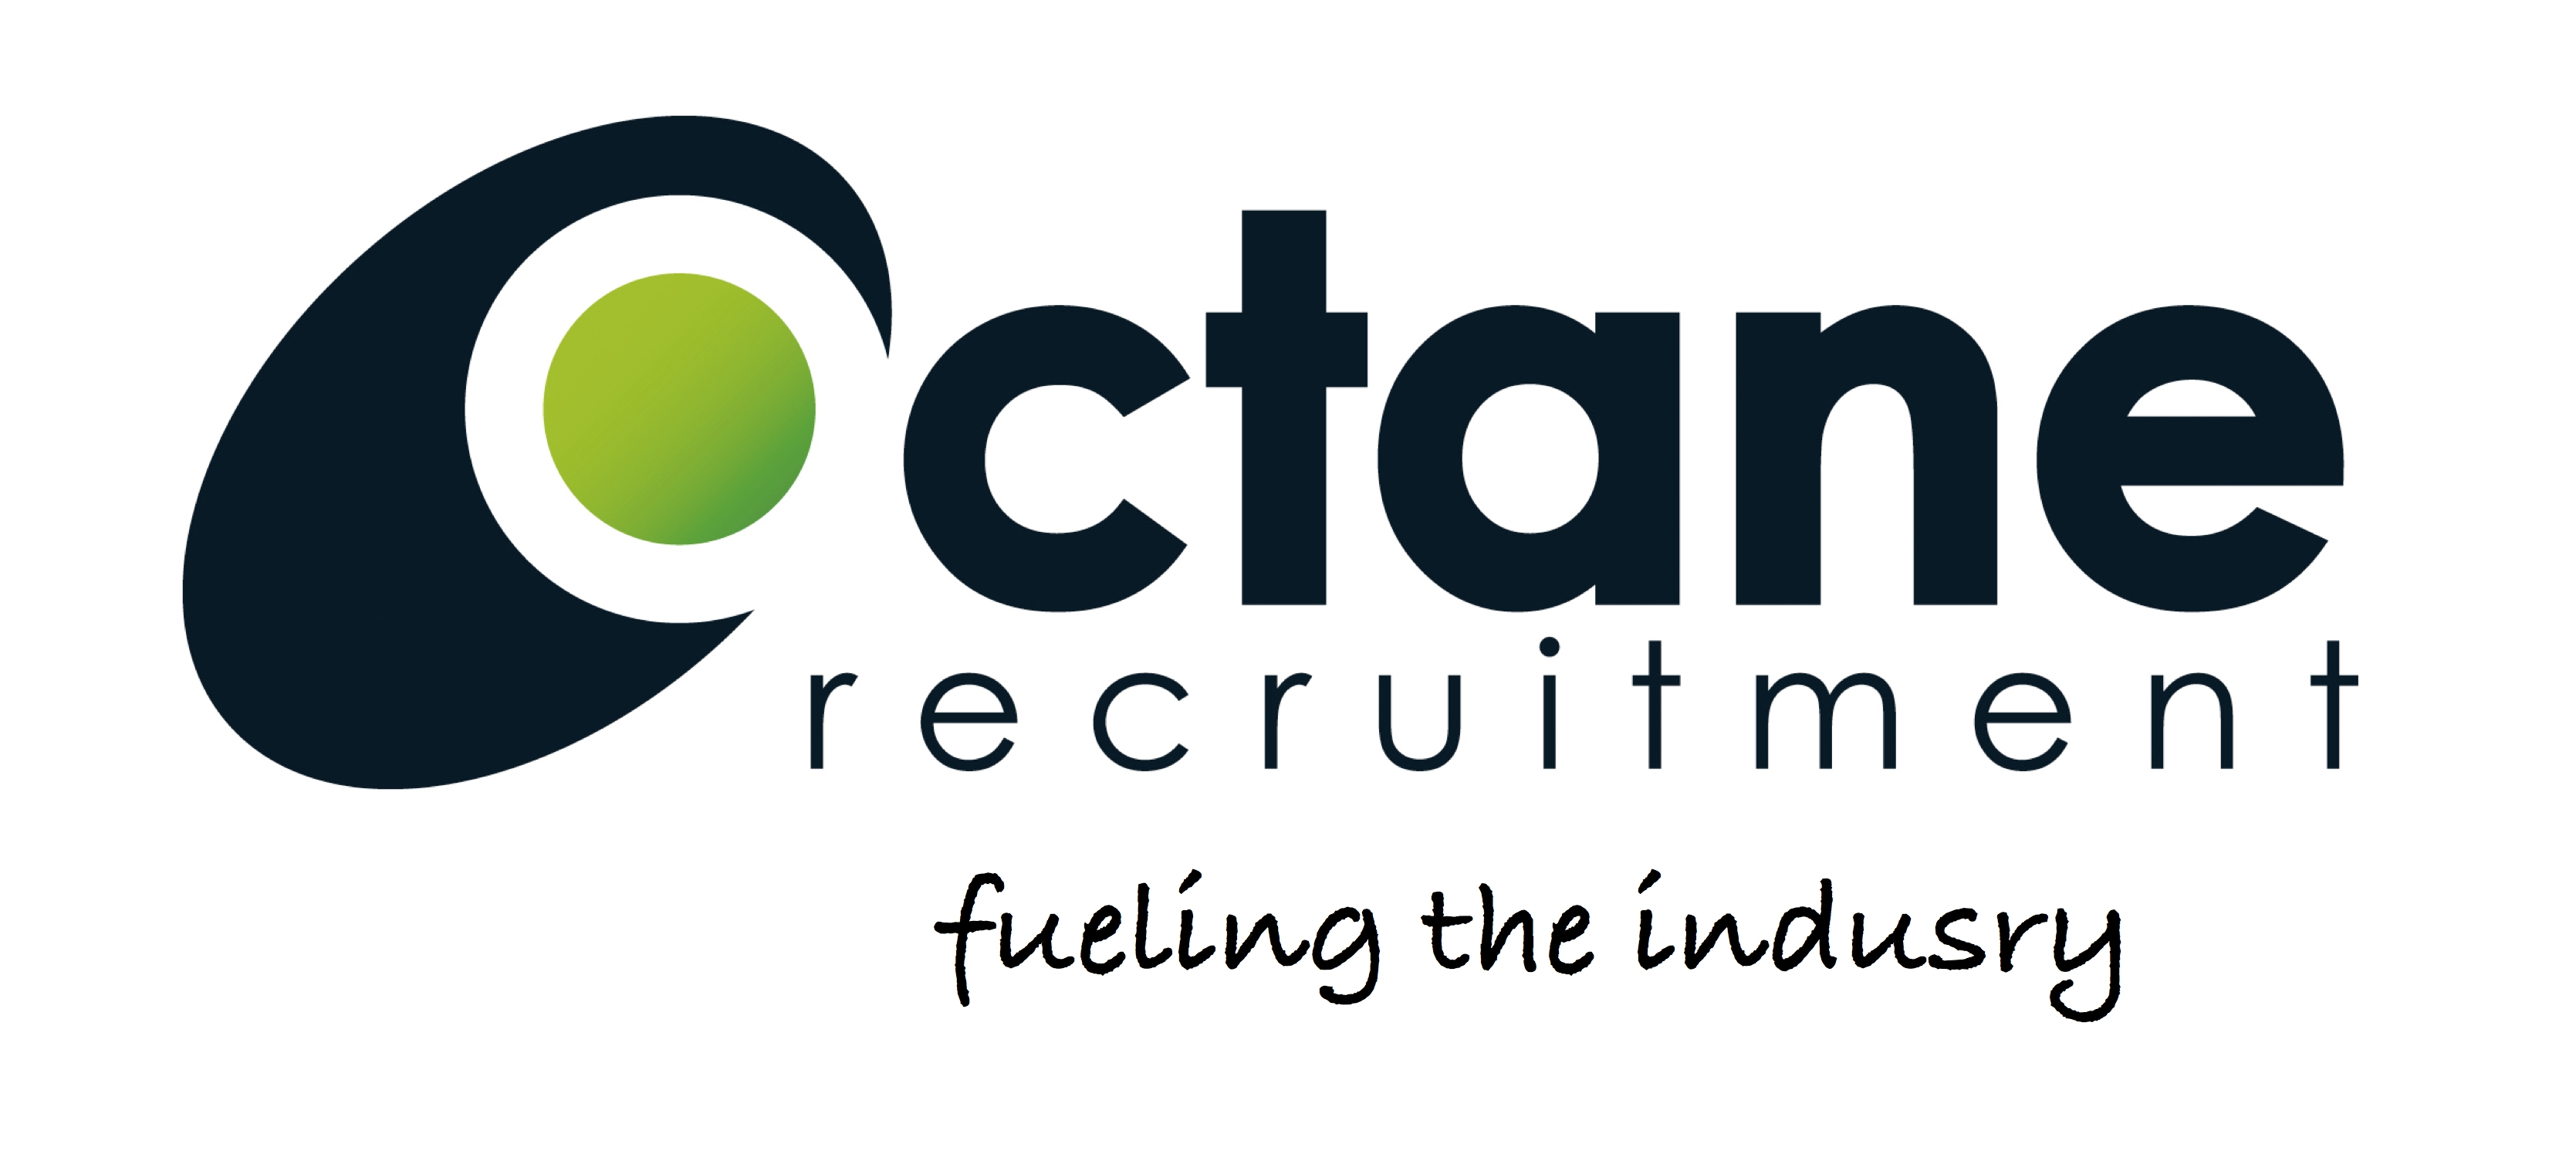 Octanerecruitment